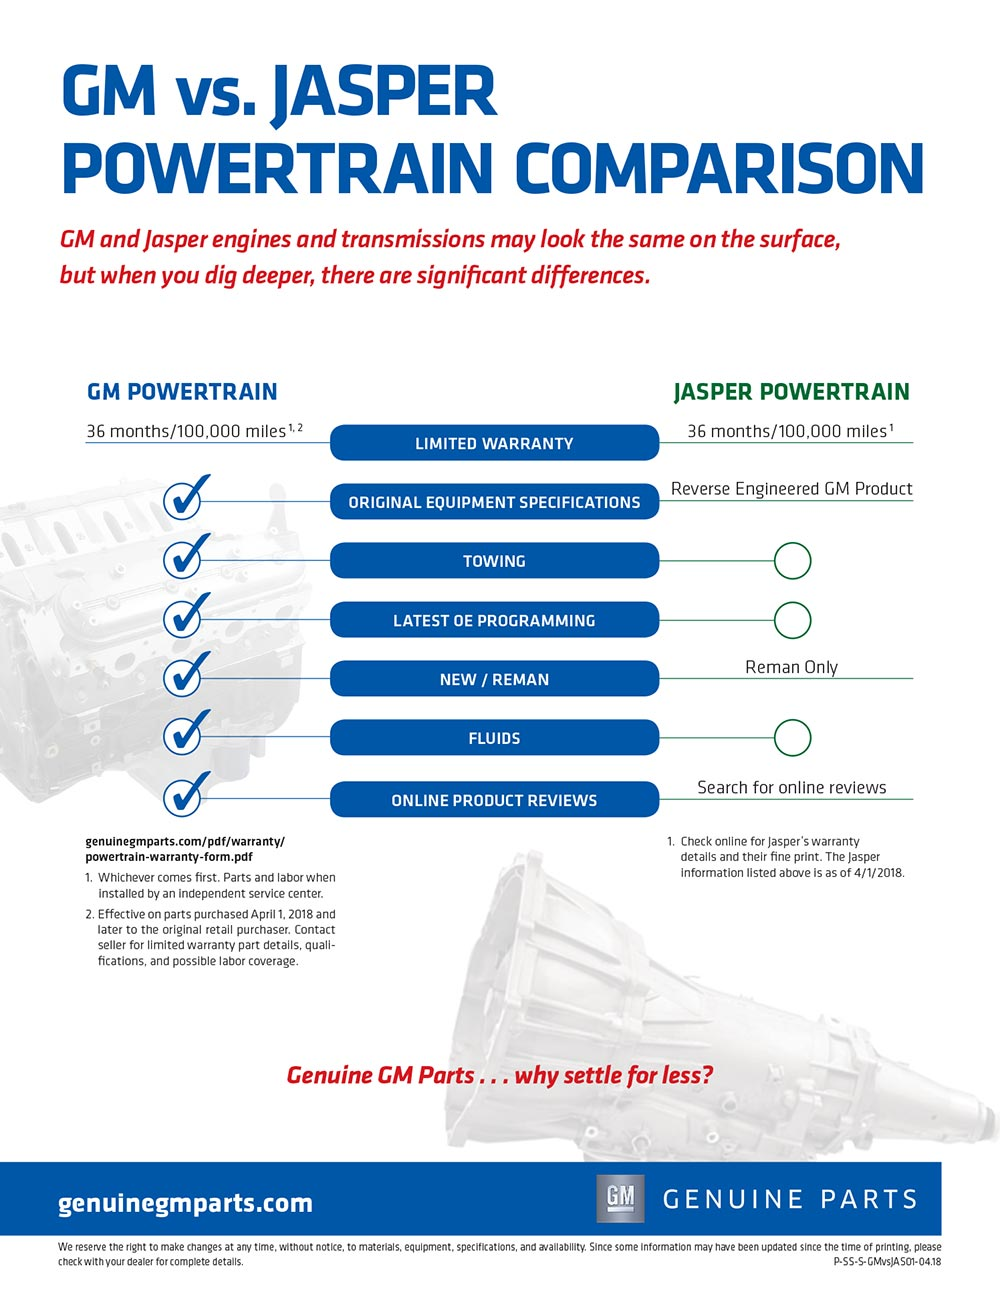 Gm Powertrain Warranty >> Gm Vs Jasper Powertrain Comparison 877 Nj Parts Auto